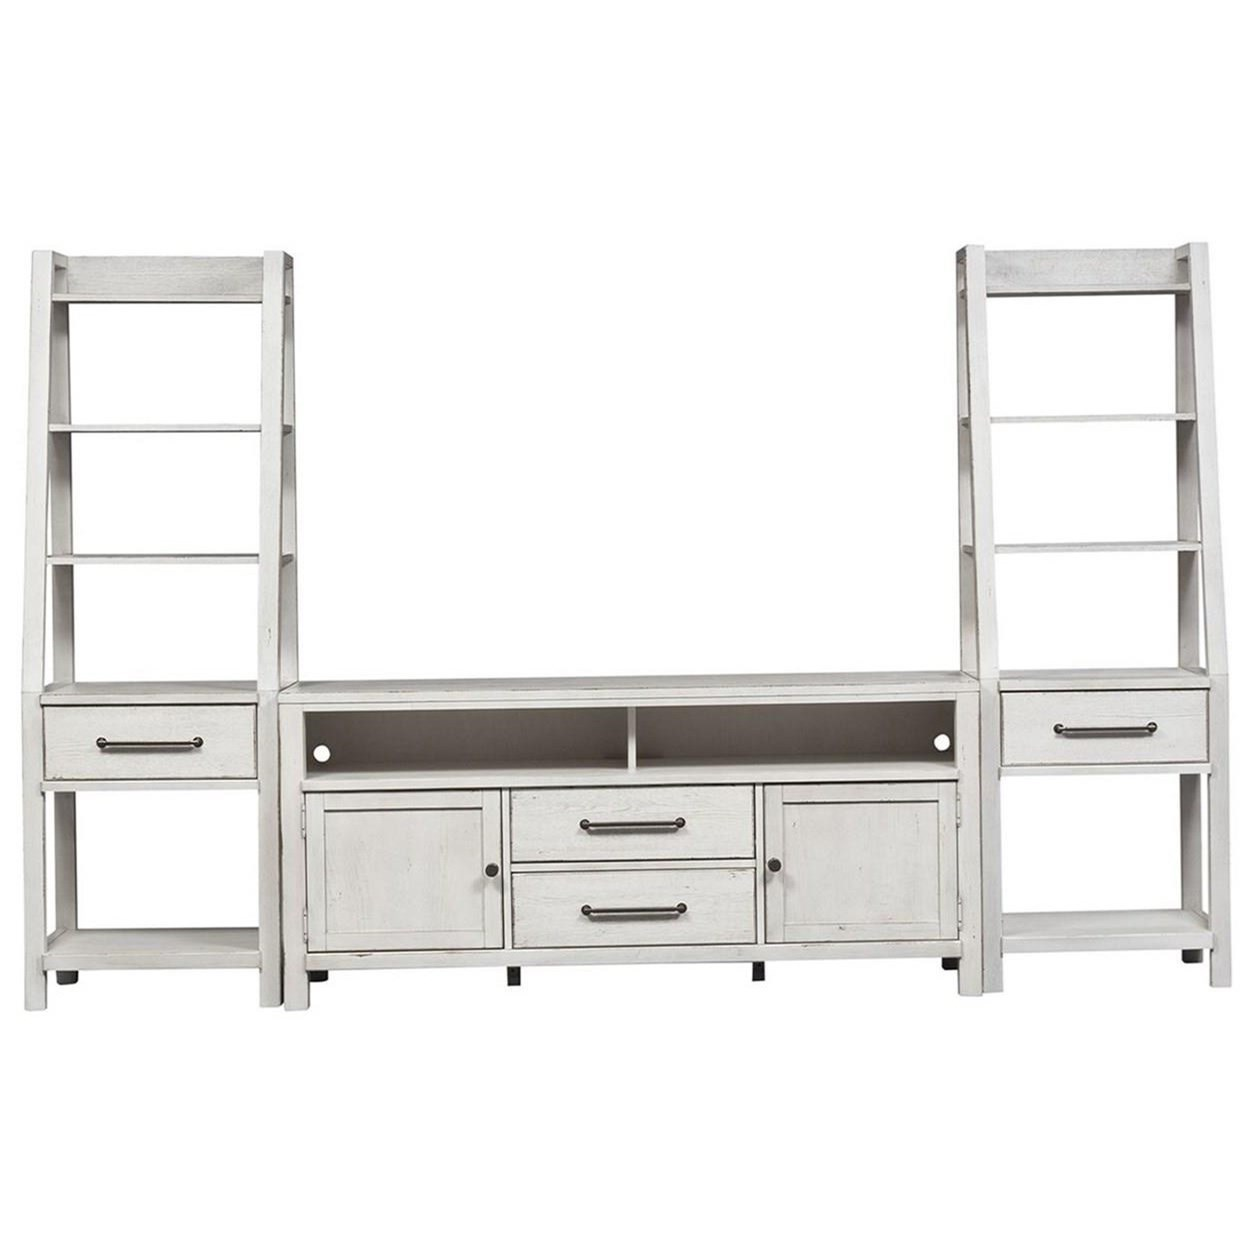 Modern Farmhouse Entertainment Center with Piers by Libby at Walker's Furniture